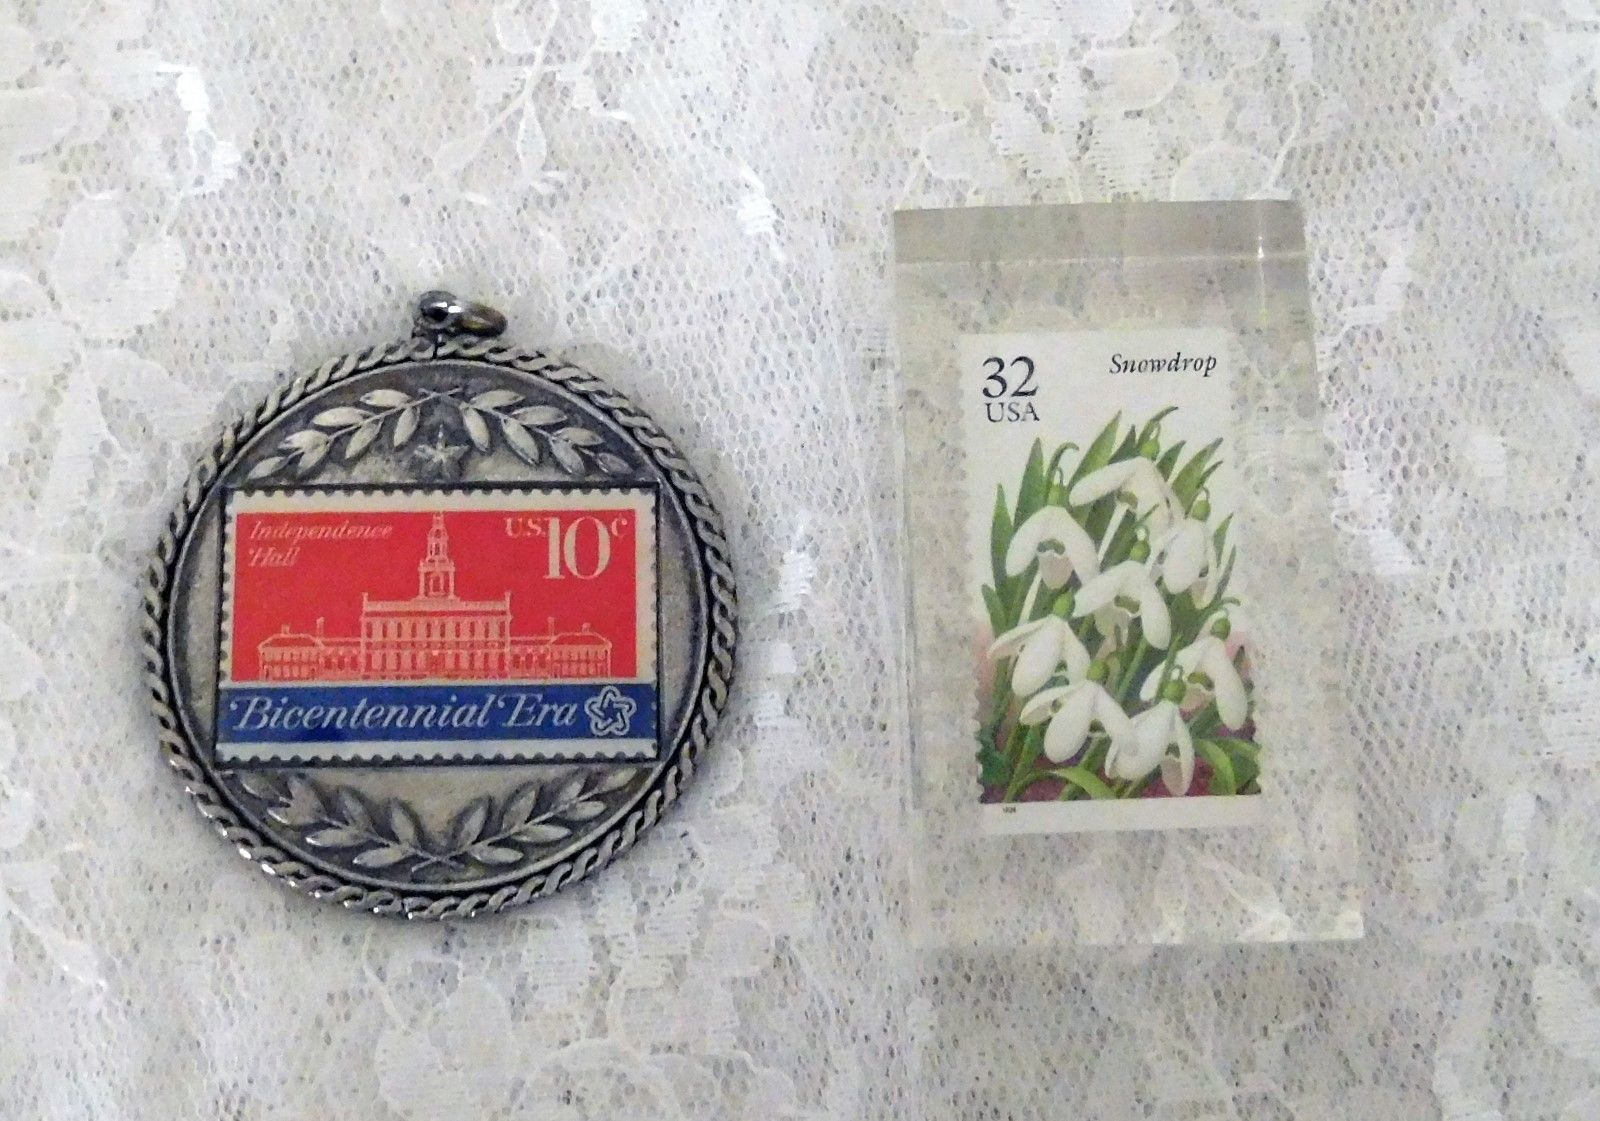 U.S. 10 cent Bicentennial Stamp in Pewter Medallion & 32 cent Snowdrop Acrylic